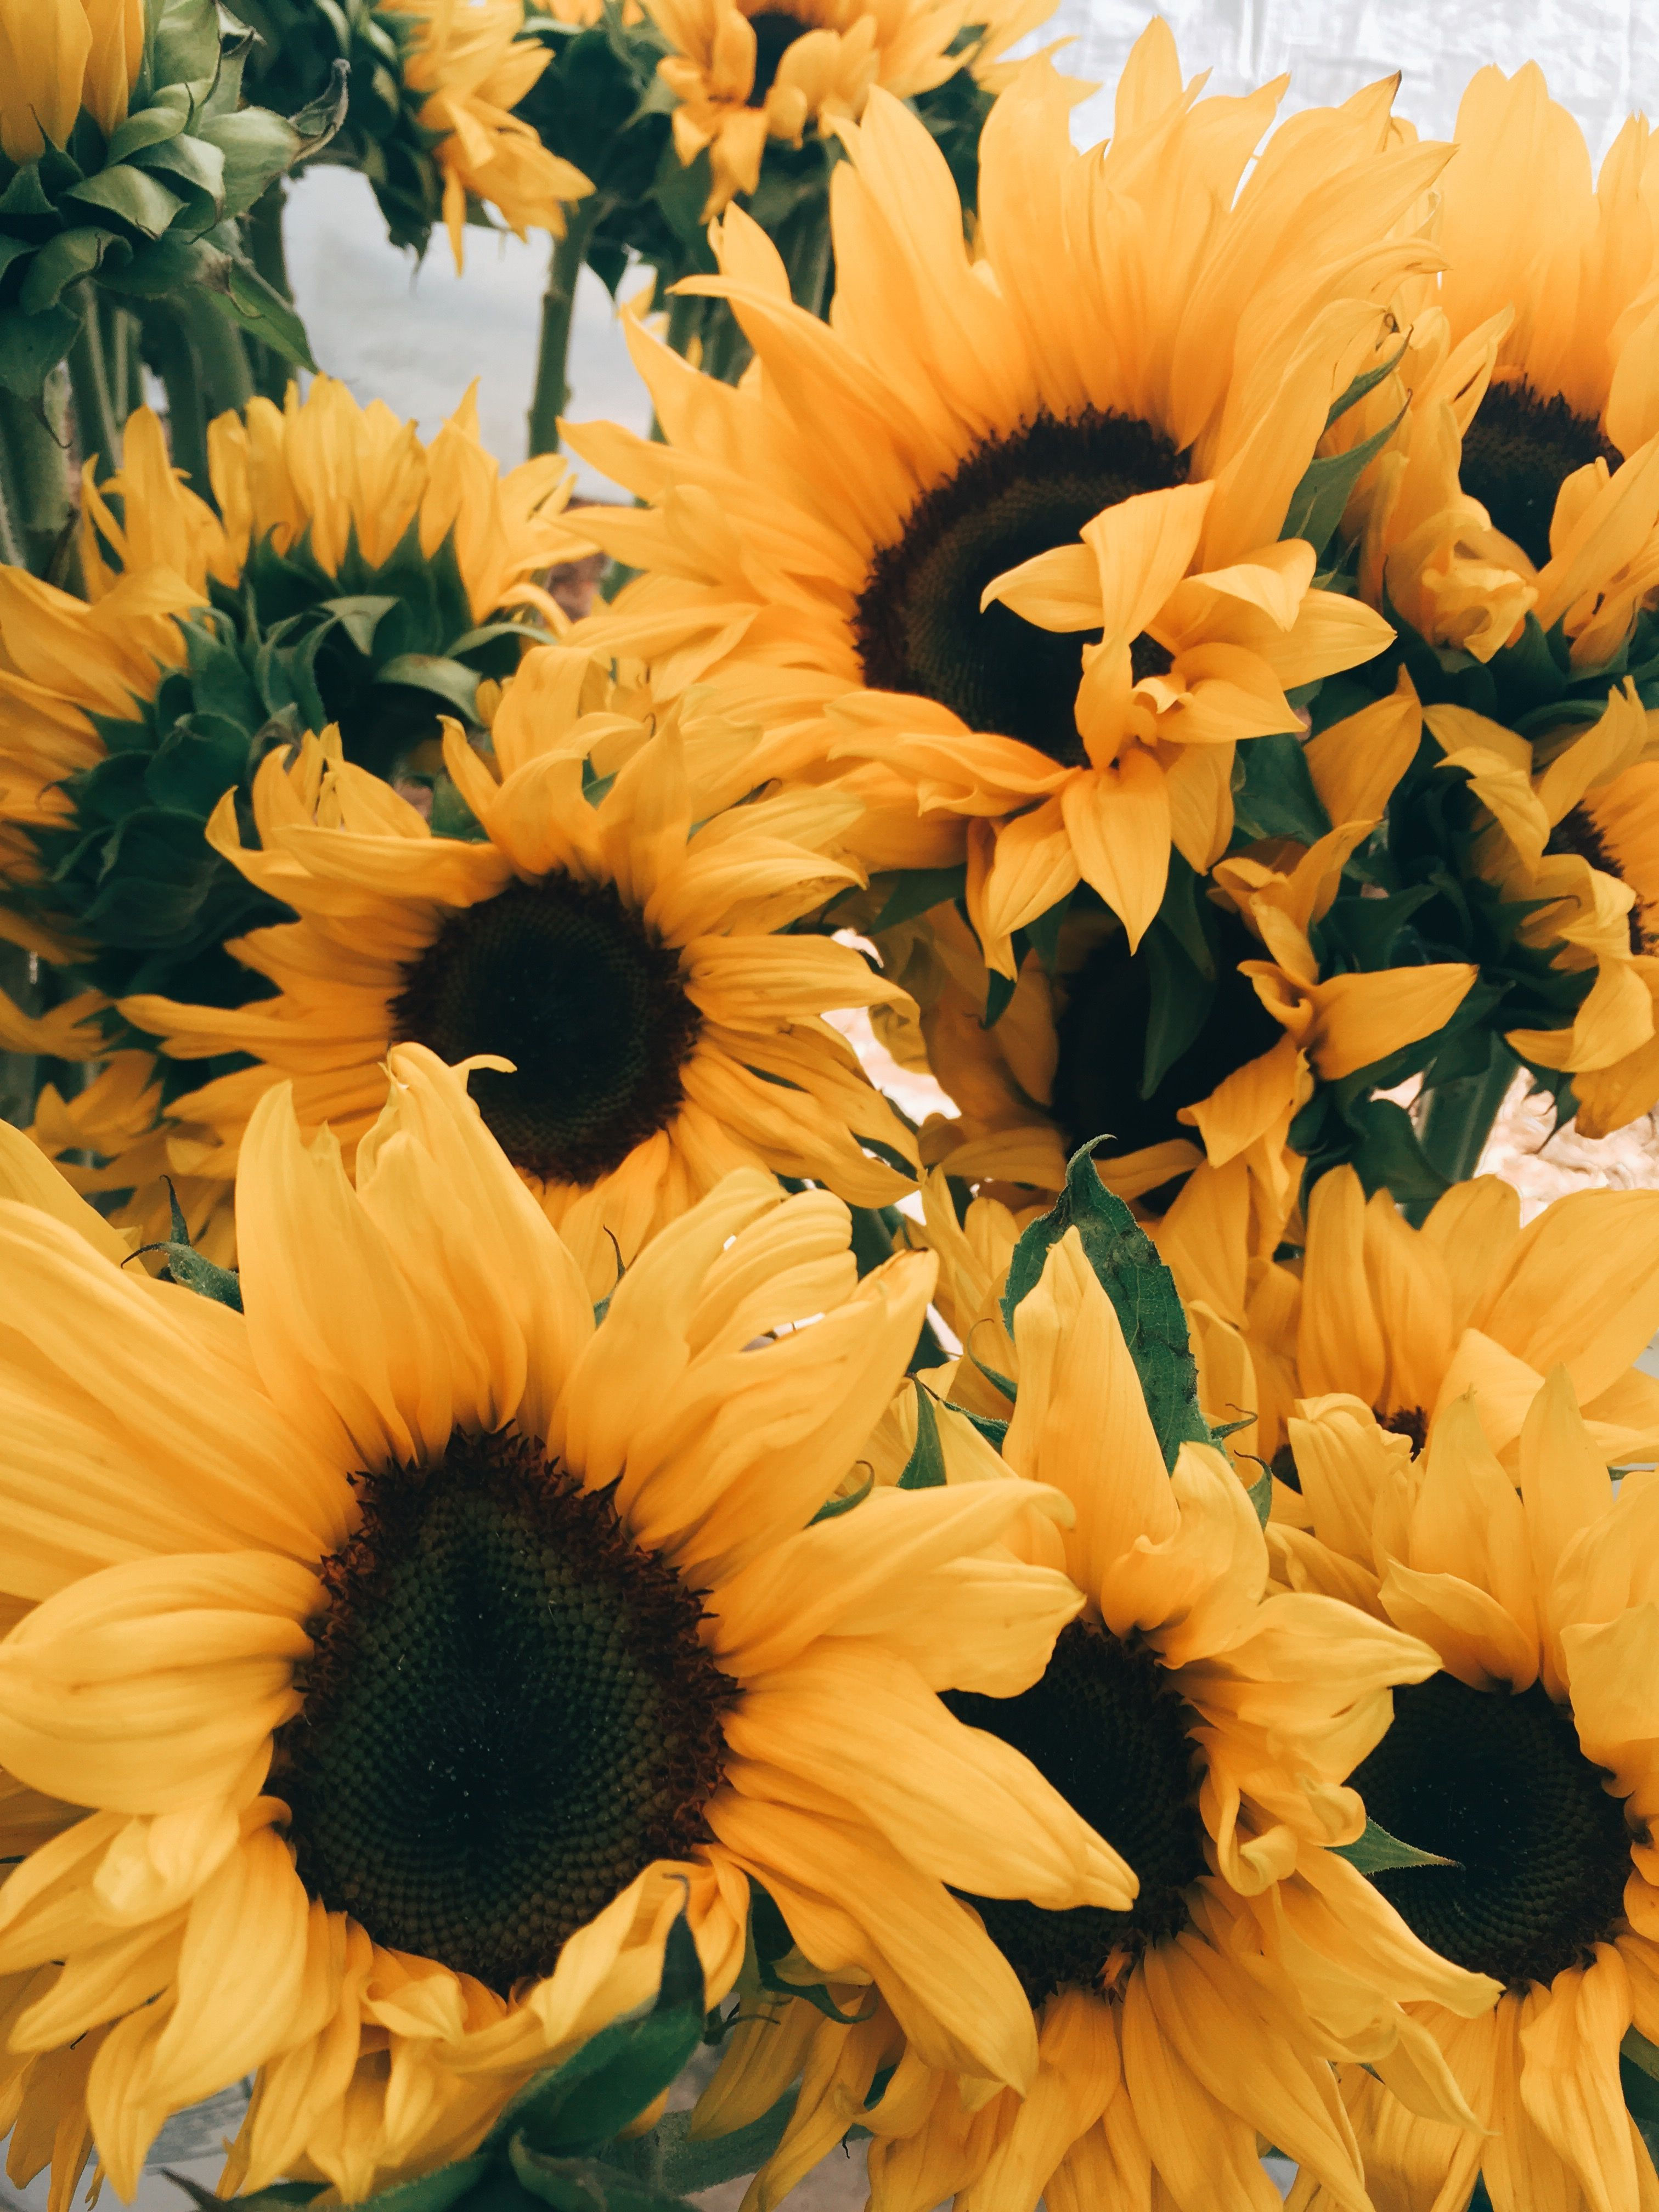 Yellow Aesthetic Sunflowers Wallpapers Top Free Yellow Aesthetic Sunflowers Backgrounds Wallpaperaccess